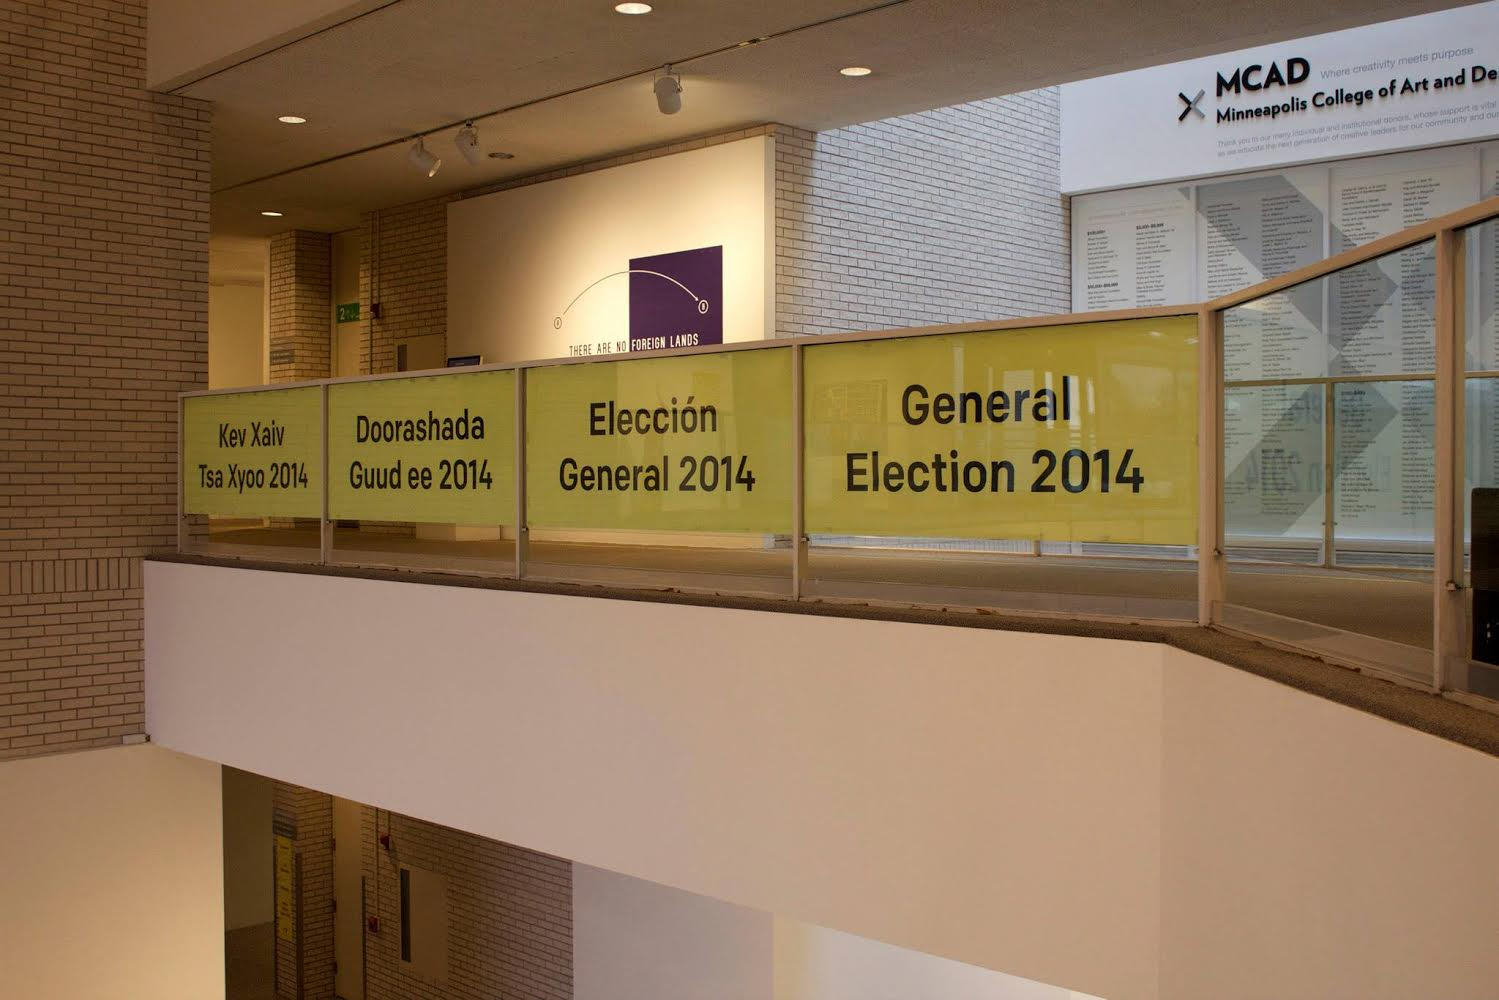 Elections signage in MCAD Main Gallery